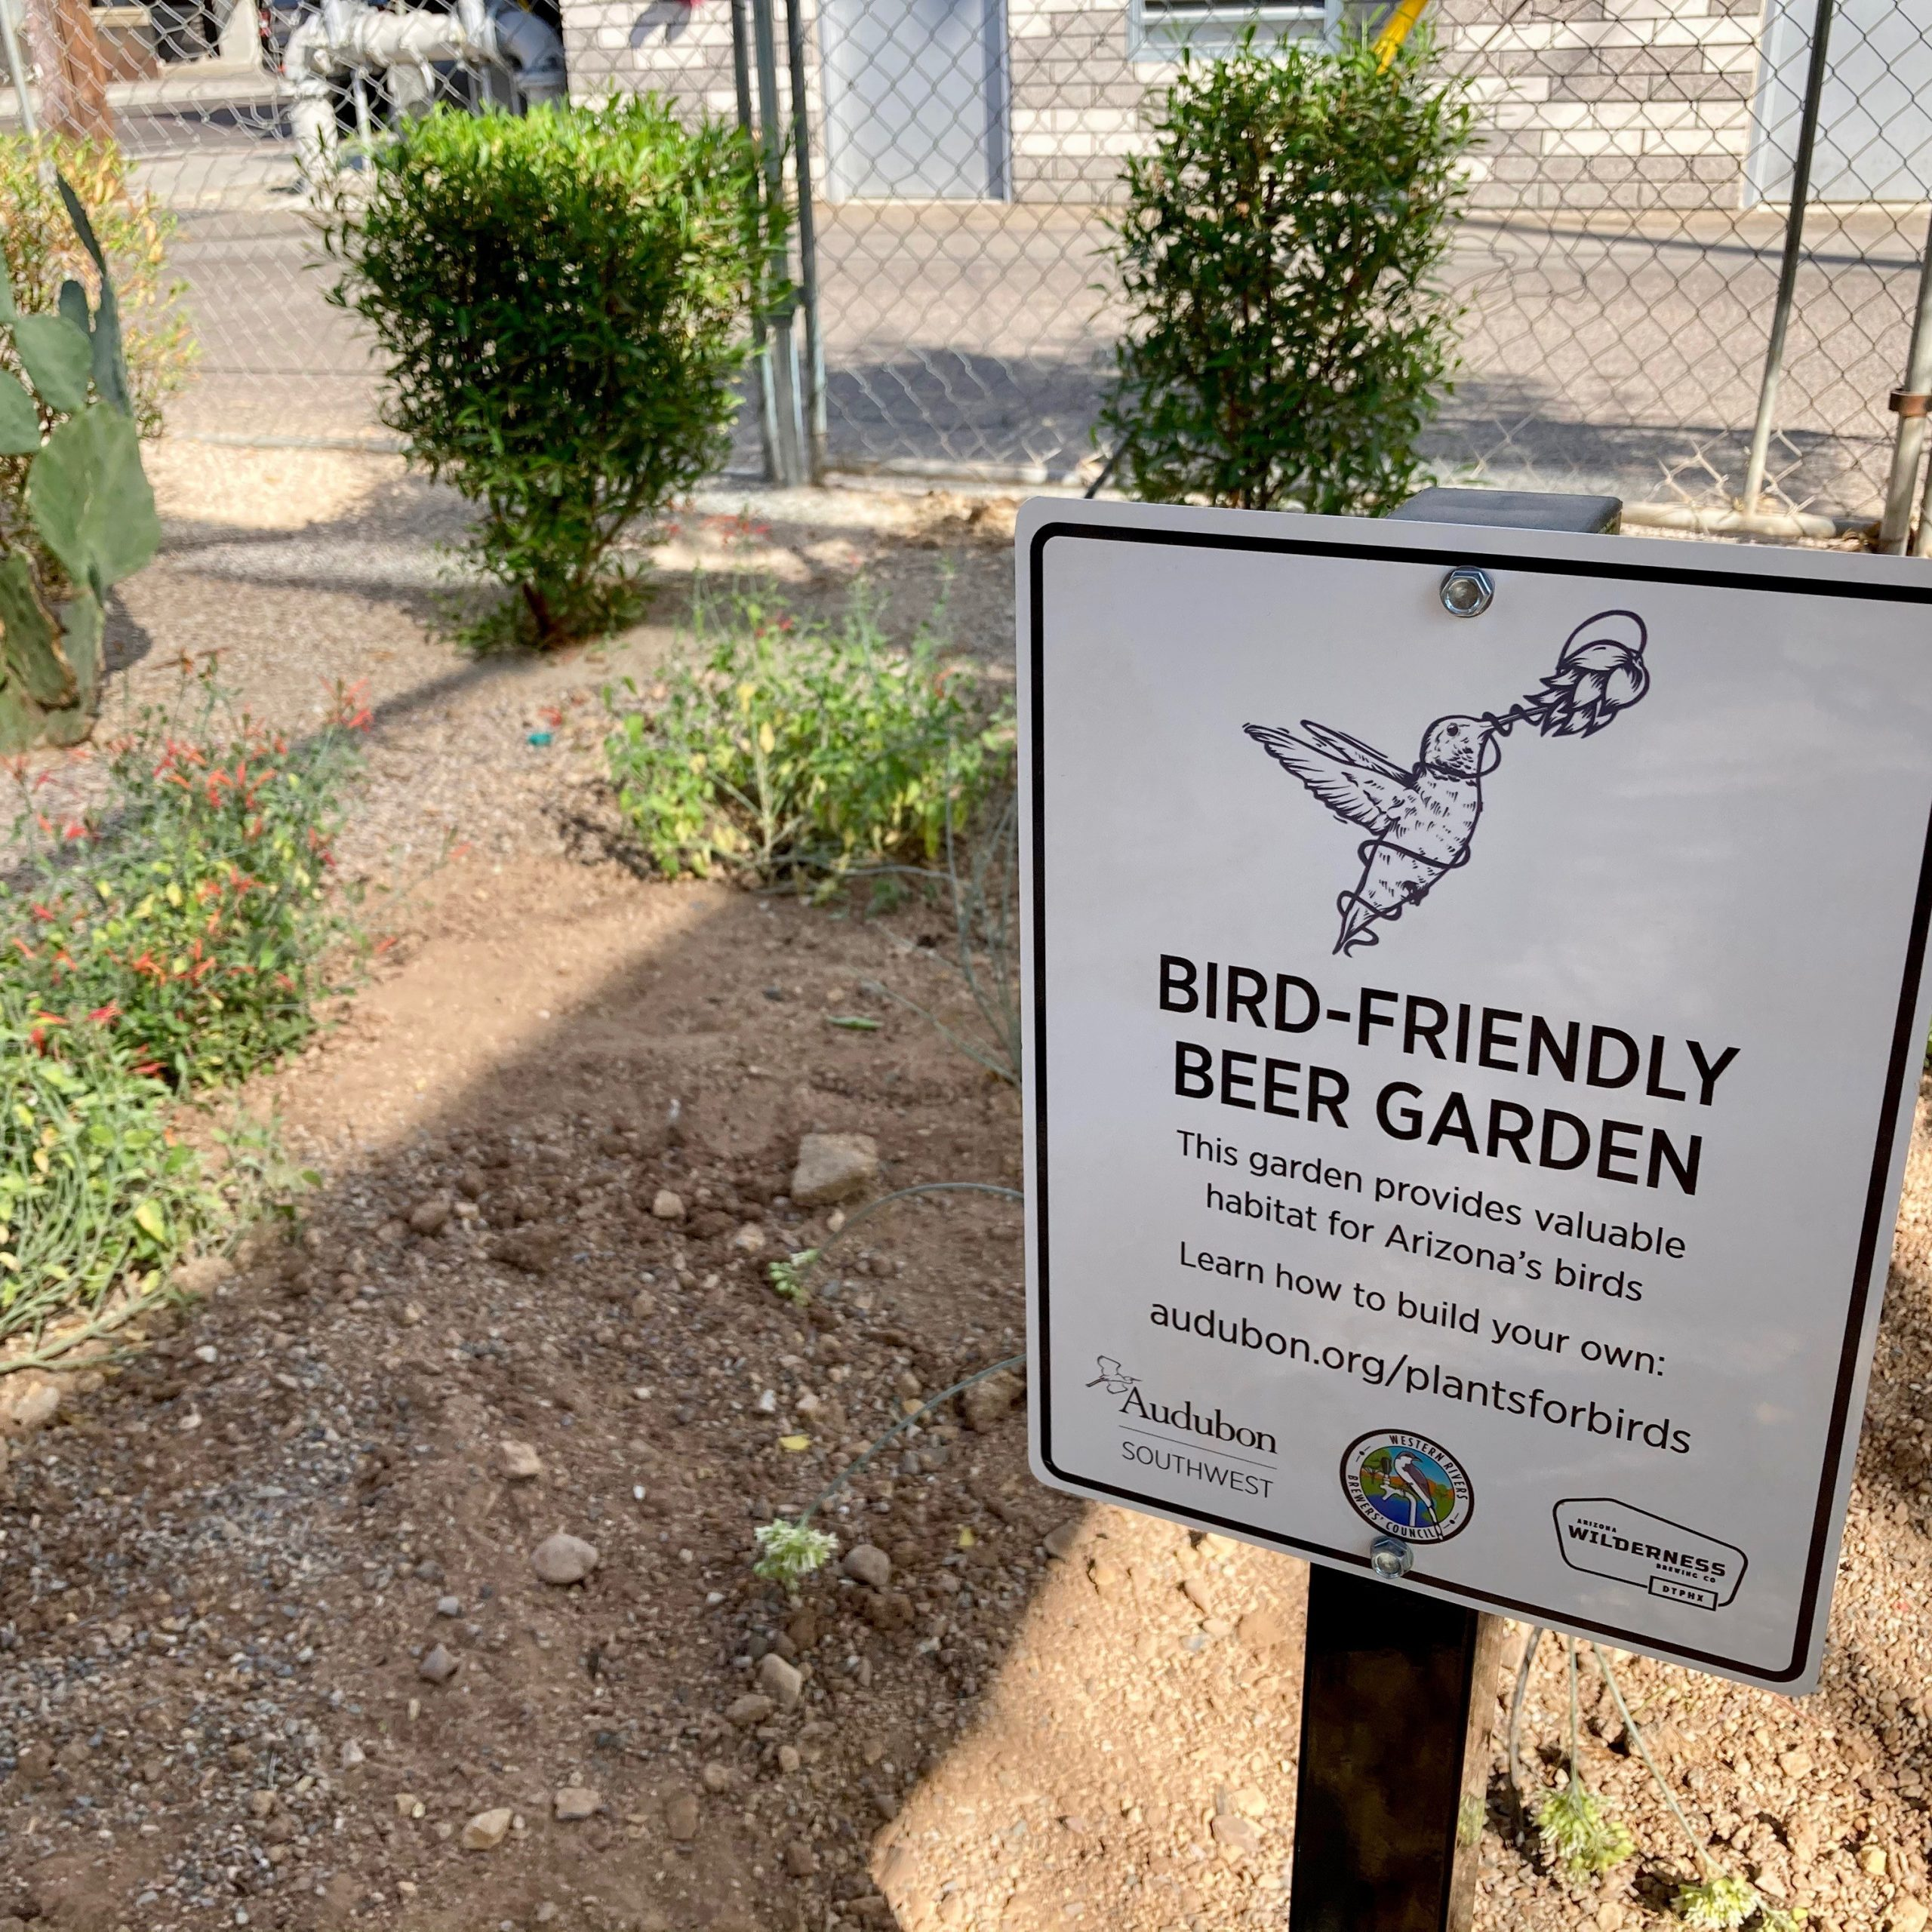 How Arizona Wilderness Dtphx Became Maybe The First Bird With Glendale Heights Birds And Butterflies Garden Stools (View 20 of 25)